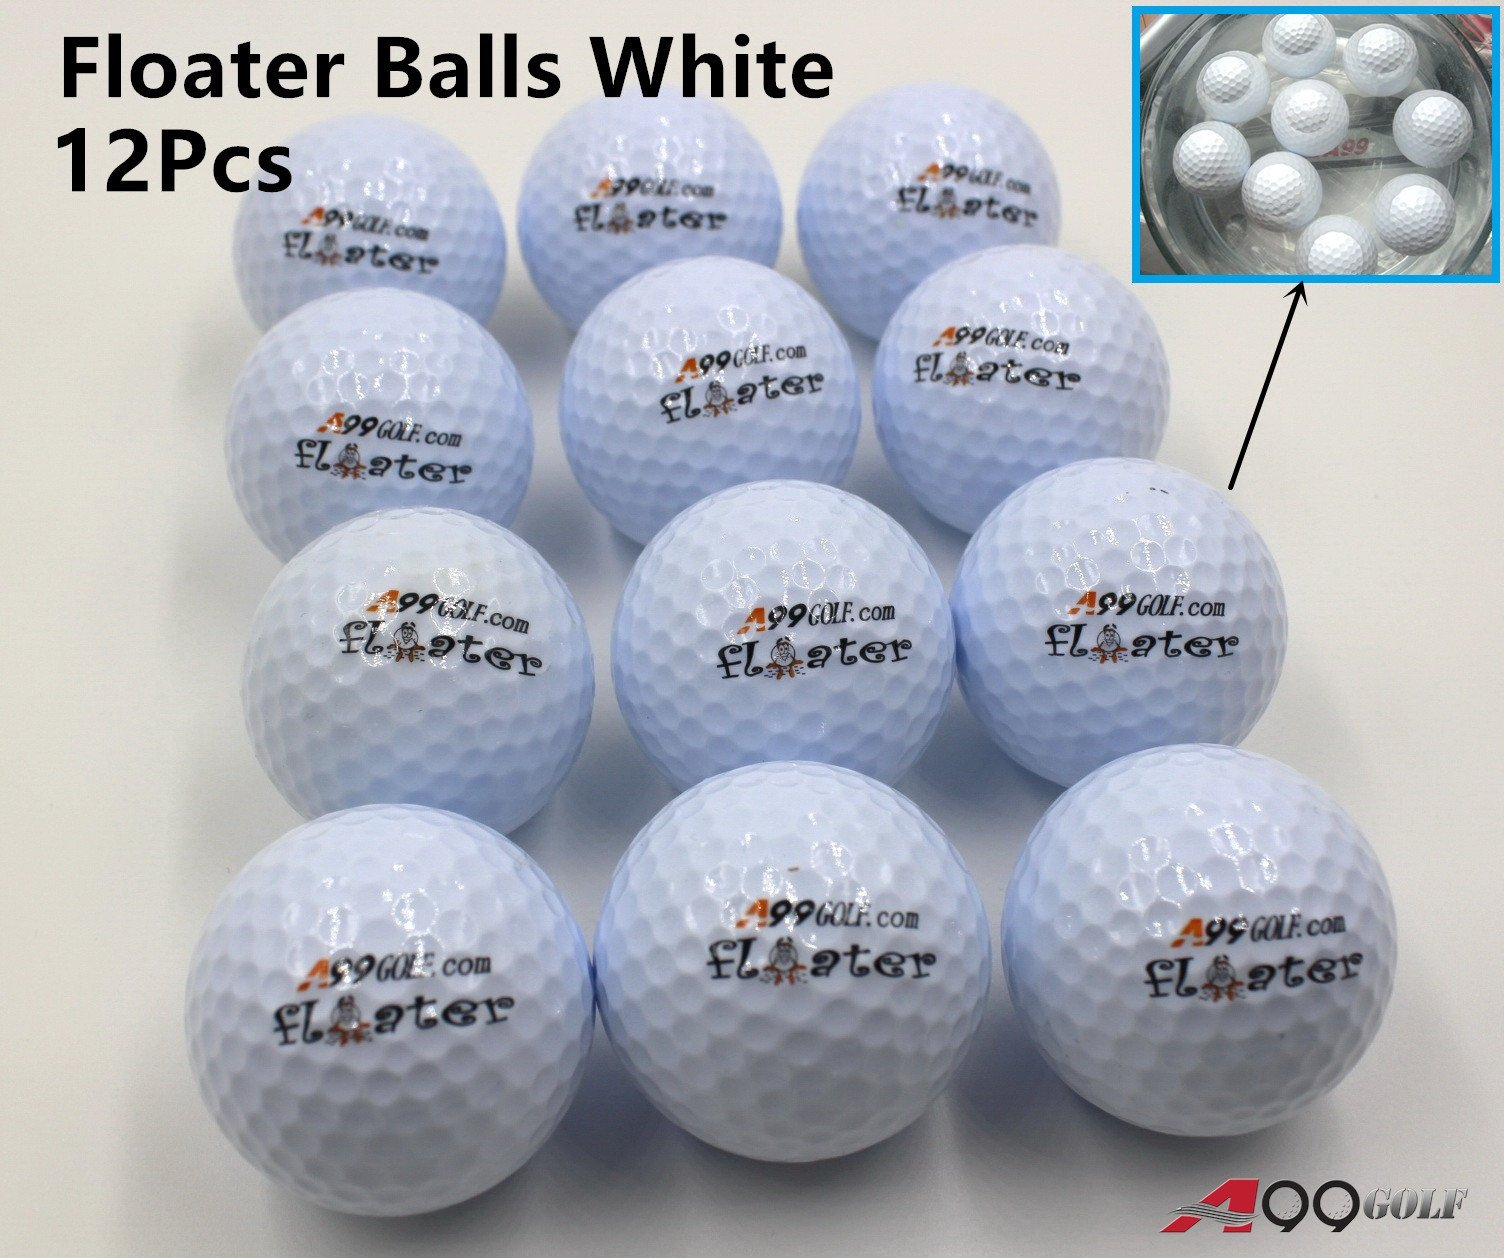 A99 Floating Golf Ball Floater Float Water Range 12pcs White New